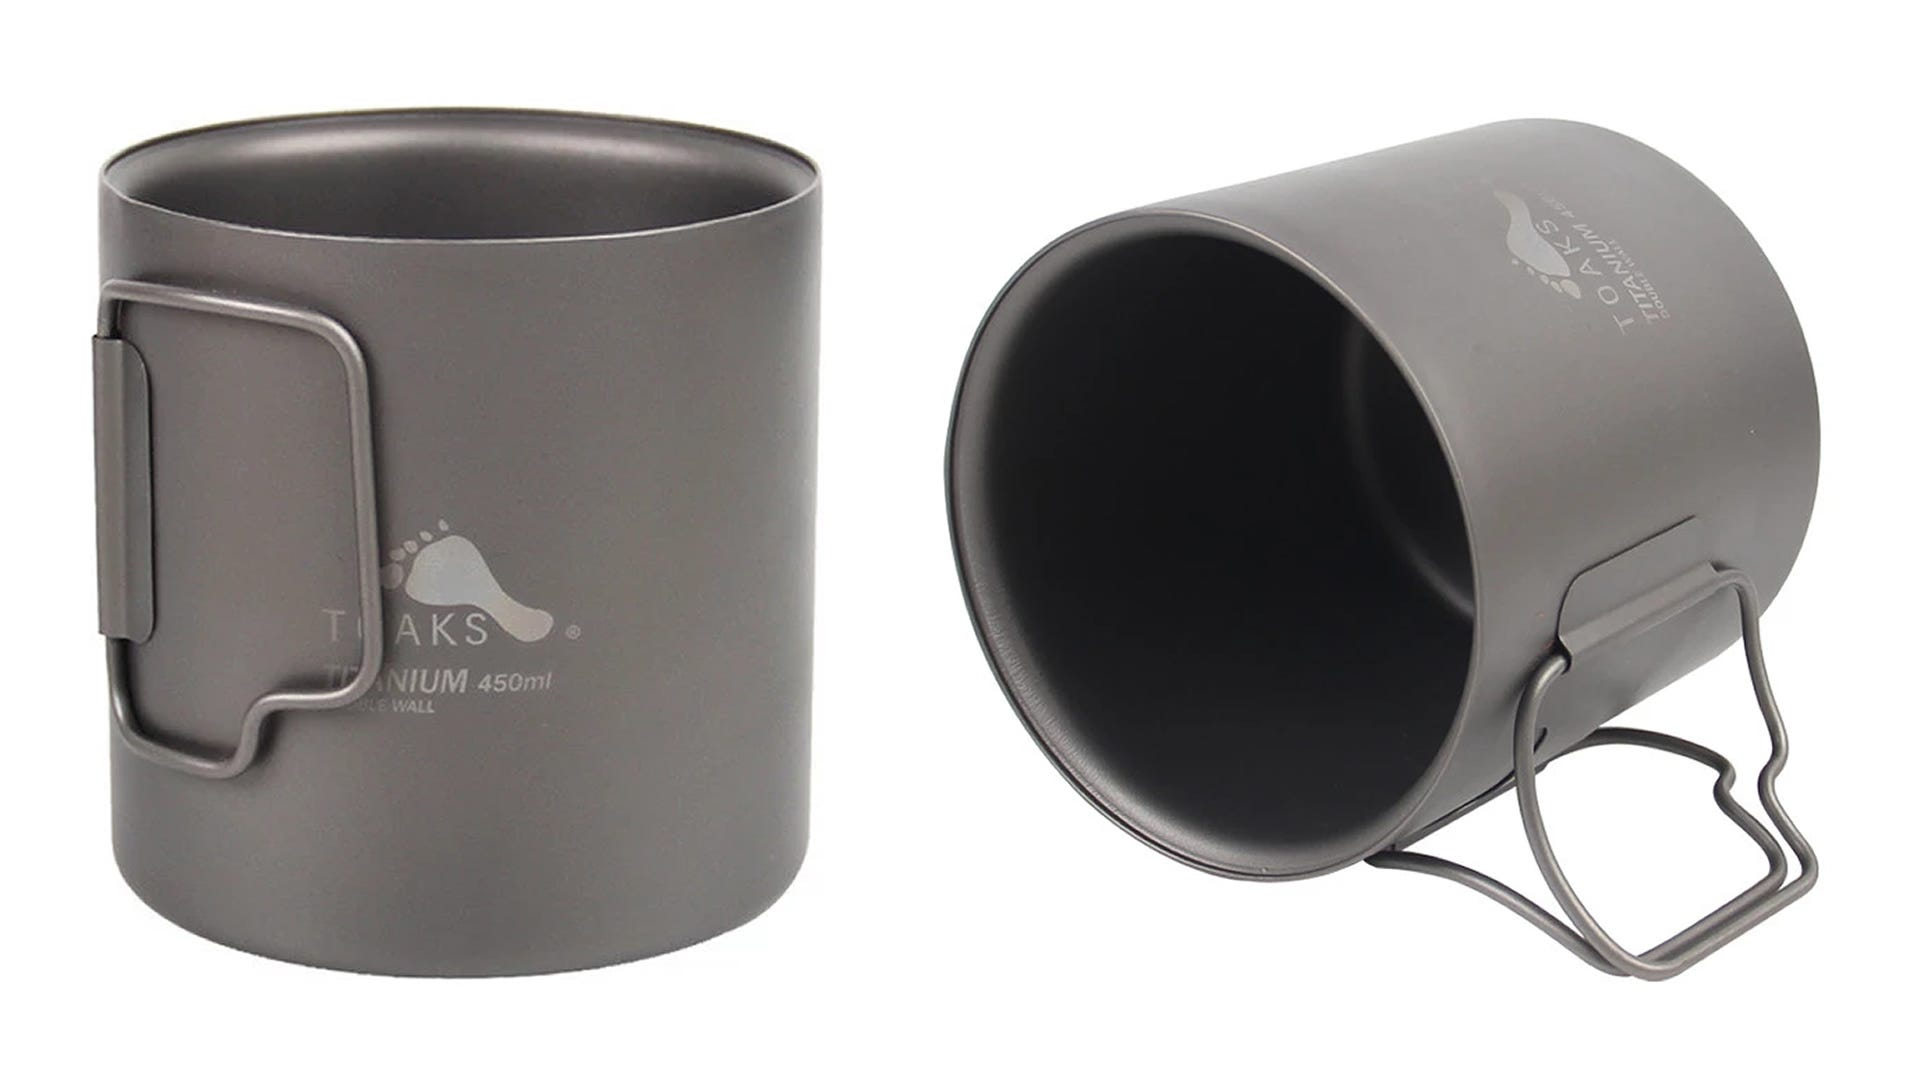 Two TOAKS Titanium Double Wall Cups.